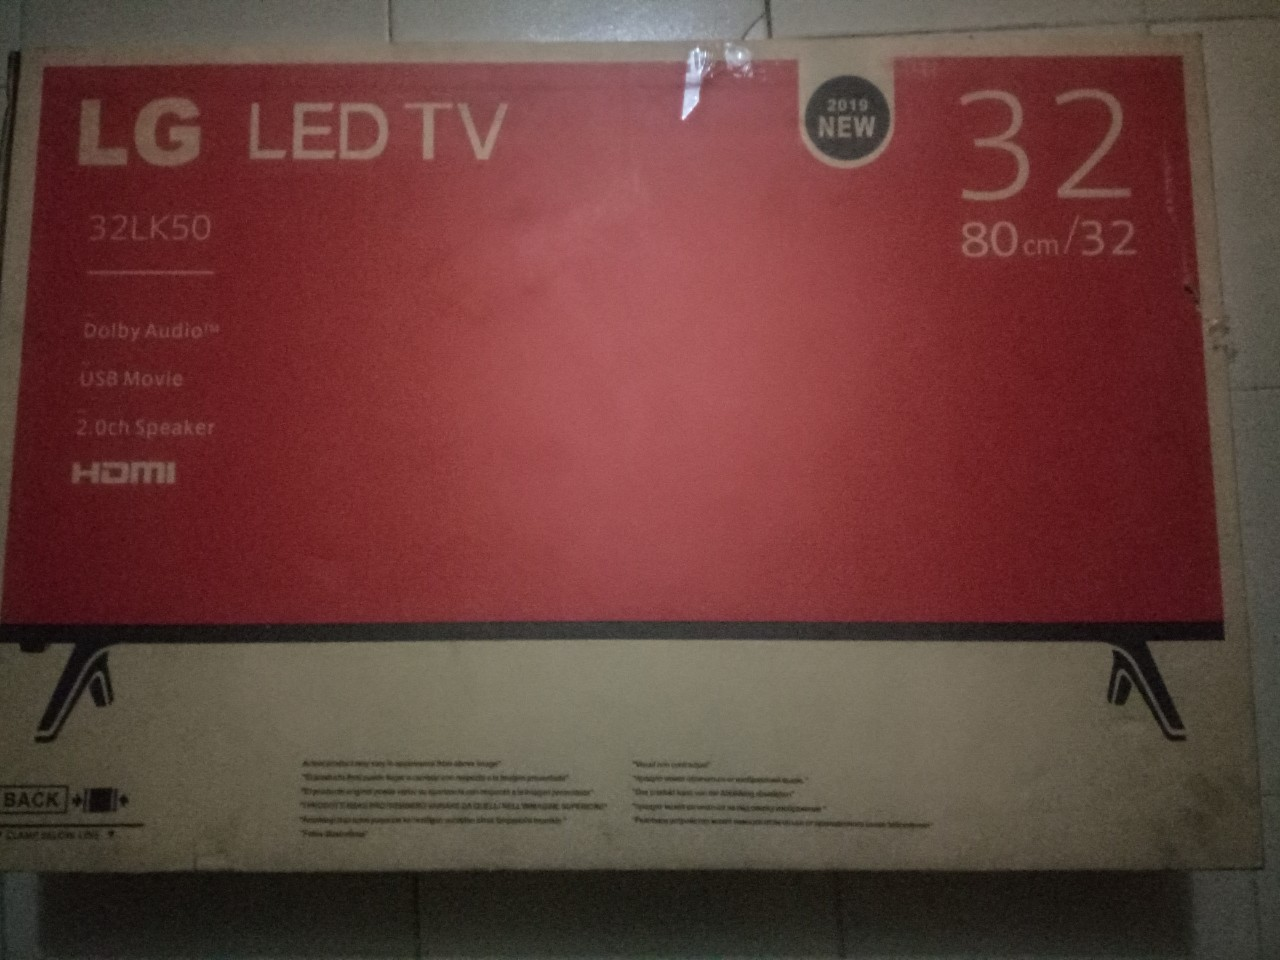 LG LED (Plasma) 32Inch TV For Sale - NairaOutlet Classified Ads